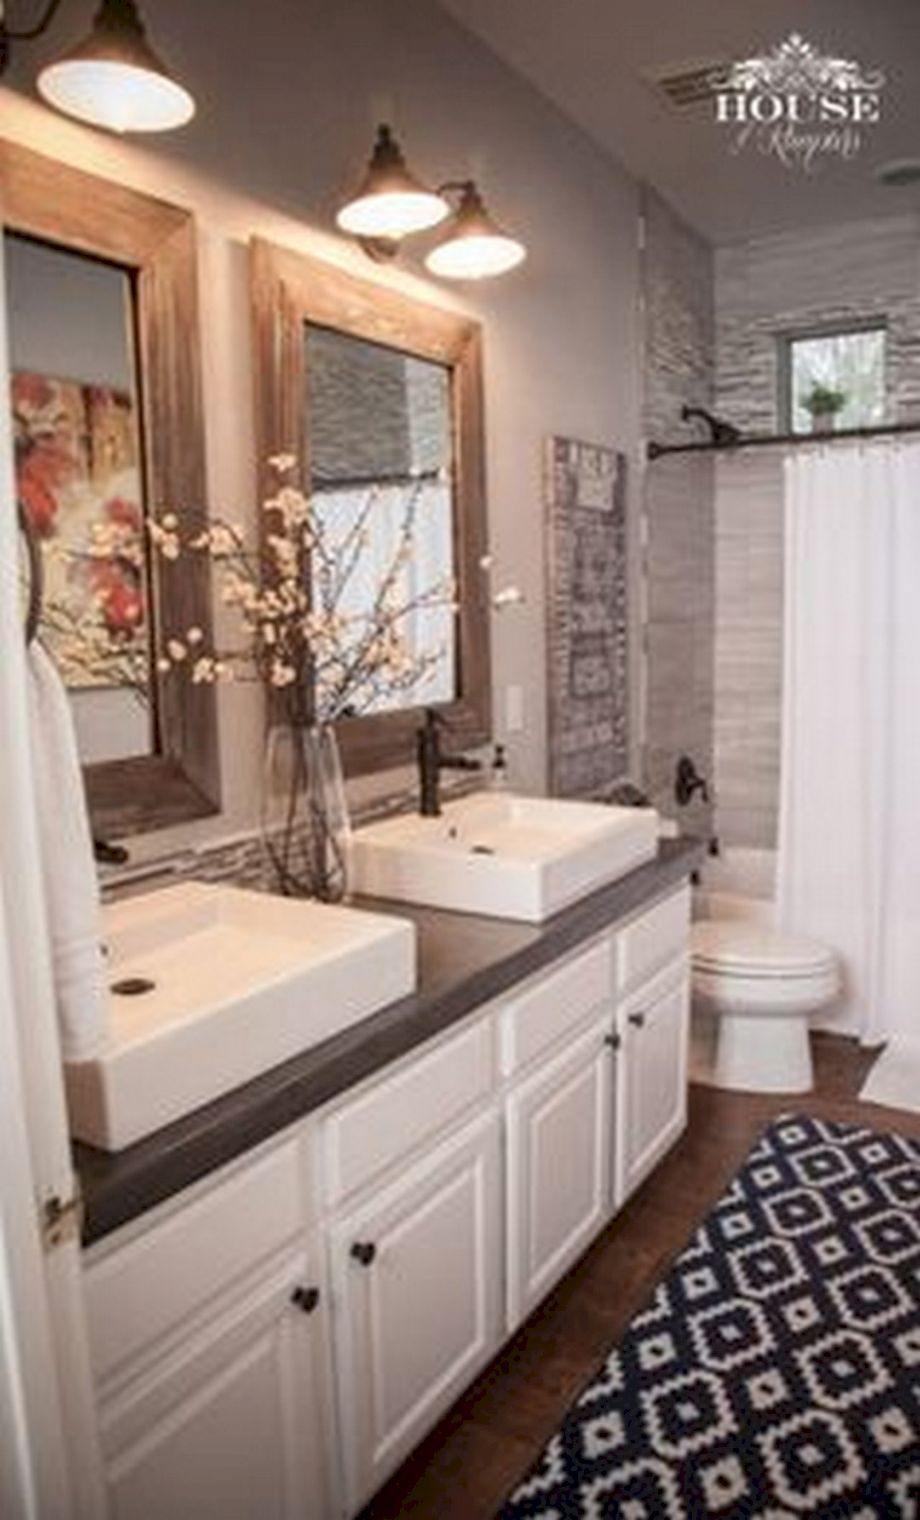 Are You Going To Estimate Budget Bathroom Remodel That You Need For Make Your Old And Dull Farmhouse Master Bathroom Bathroom Remodel Master Bathrooms Remodel